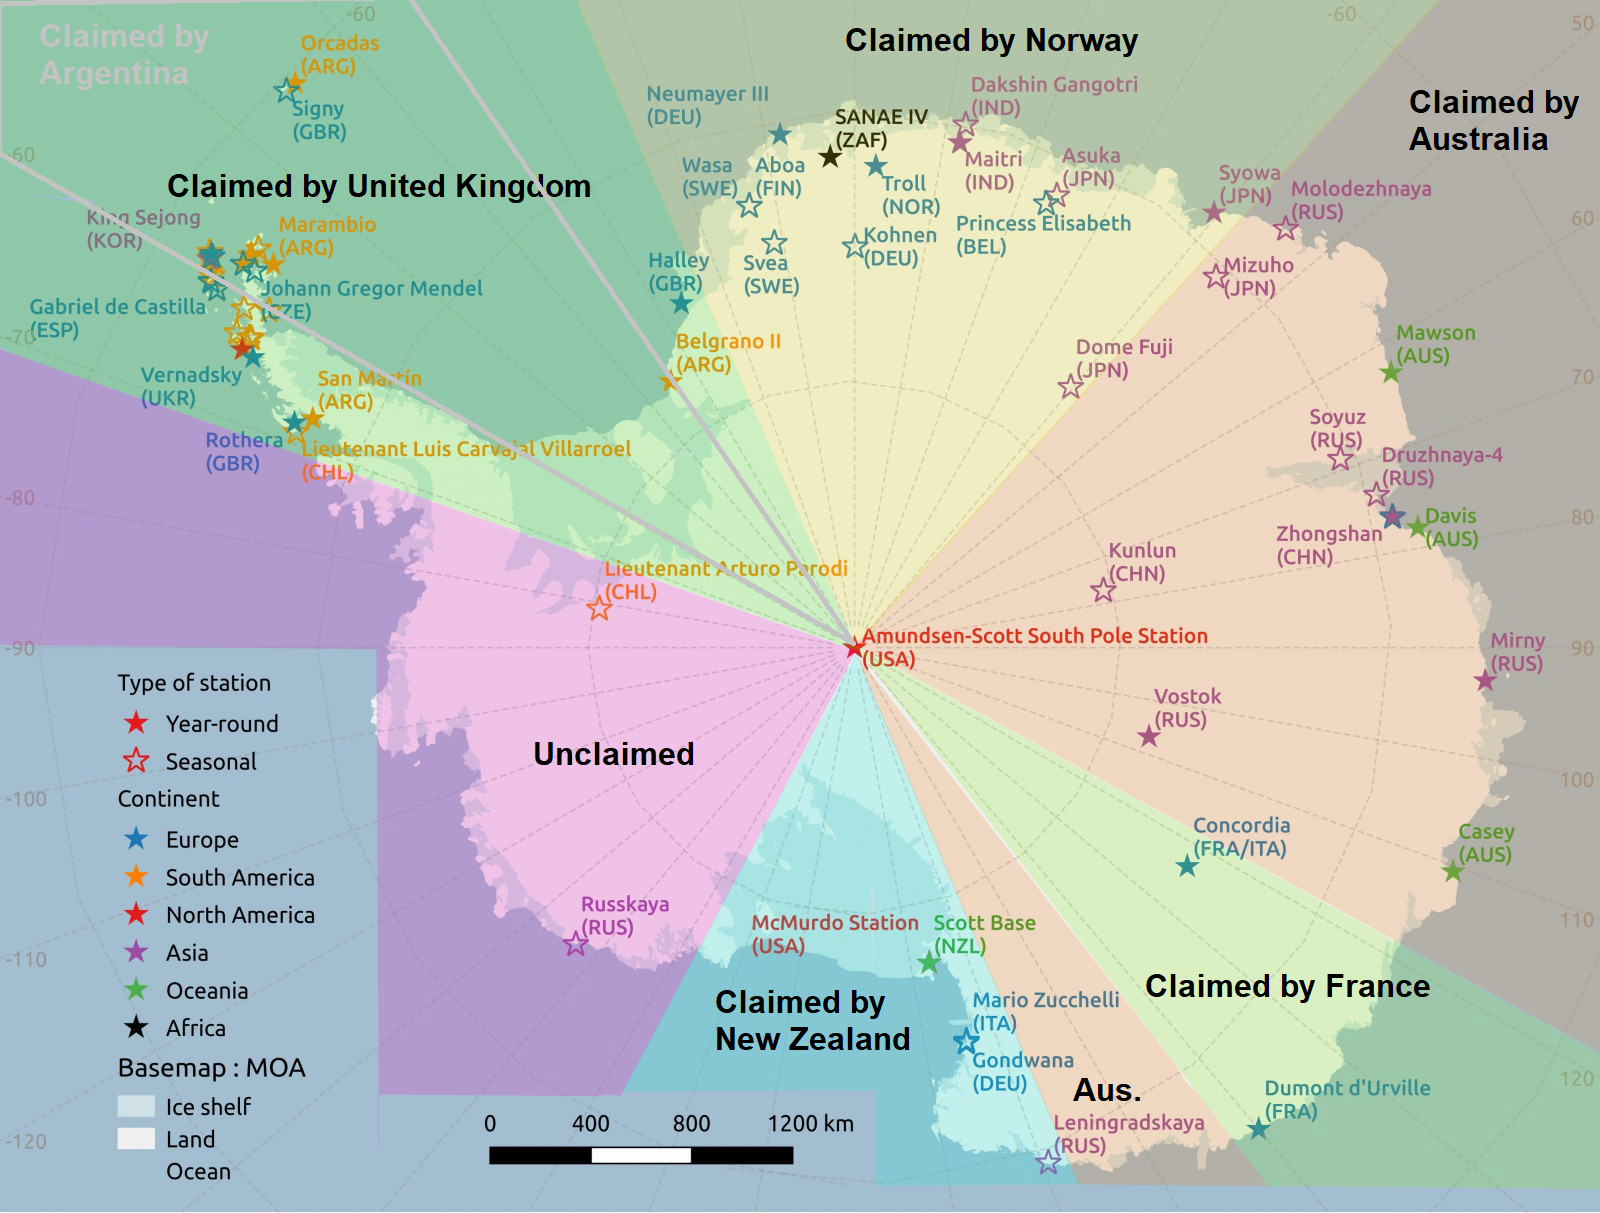 Antarctica Research Stations And Land Claims In